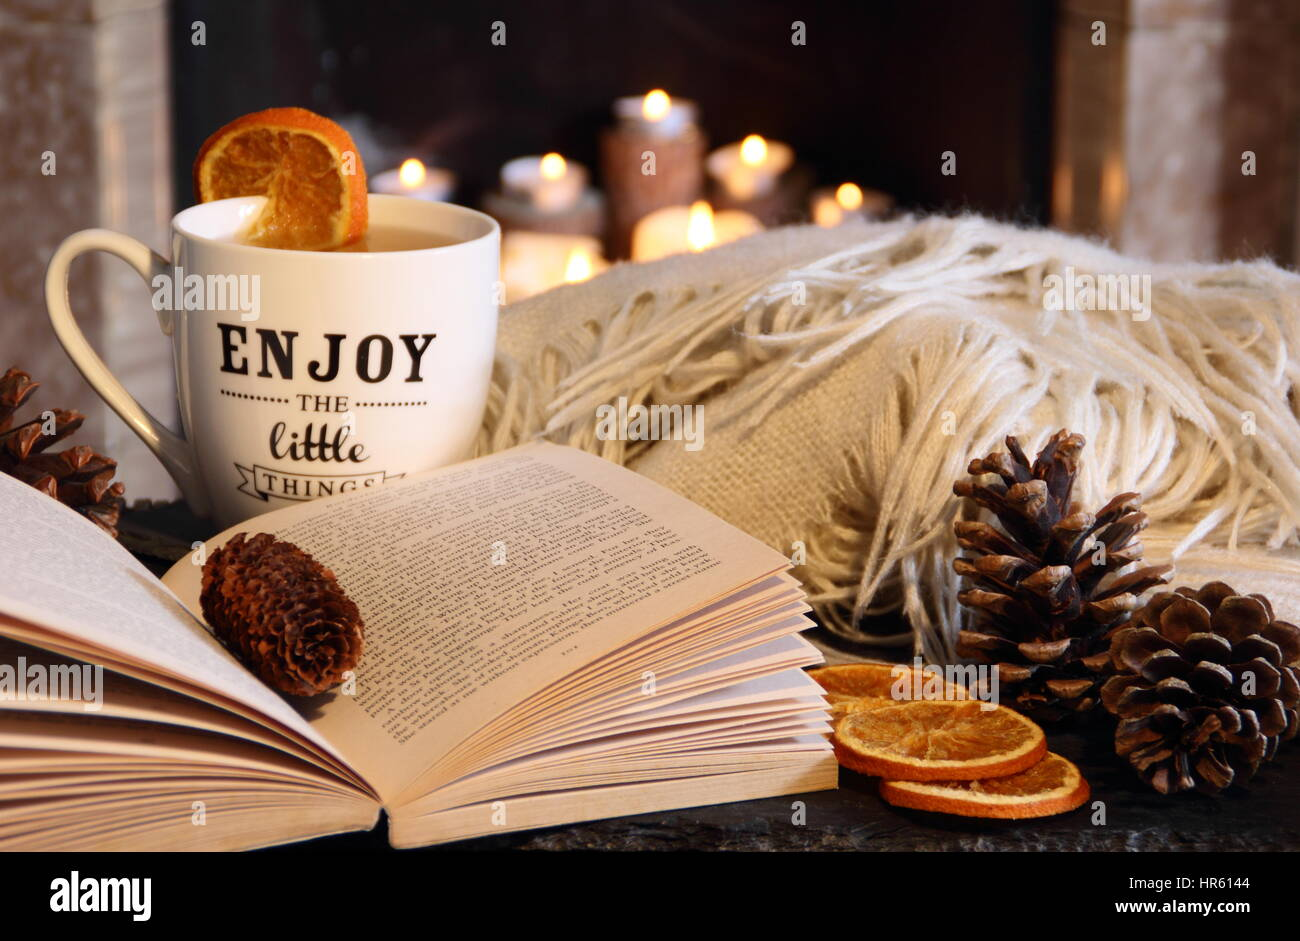 Reading a book by an open fireplace in a cosy hygge inspired English living room with a hot drink and blanket (throw) - Stock Image